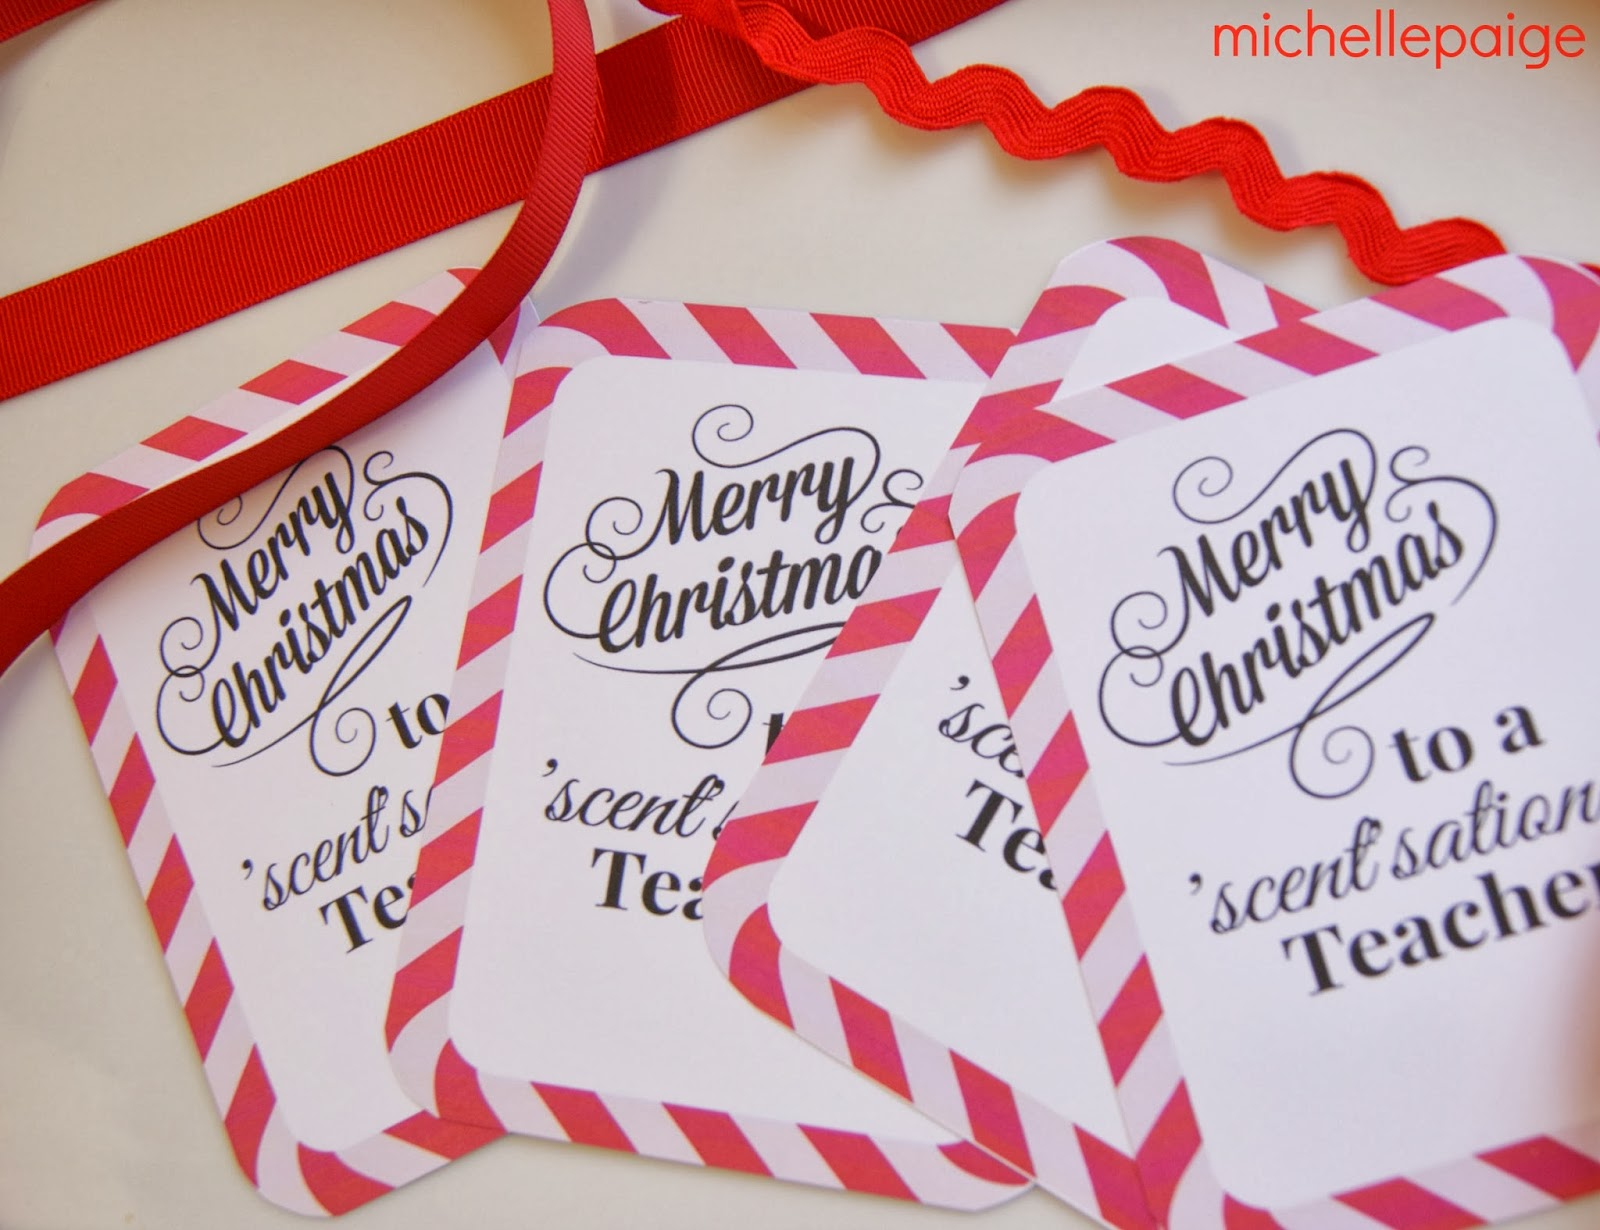 michelle paige: Quick Teacher Soap Gift for Christmas